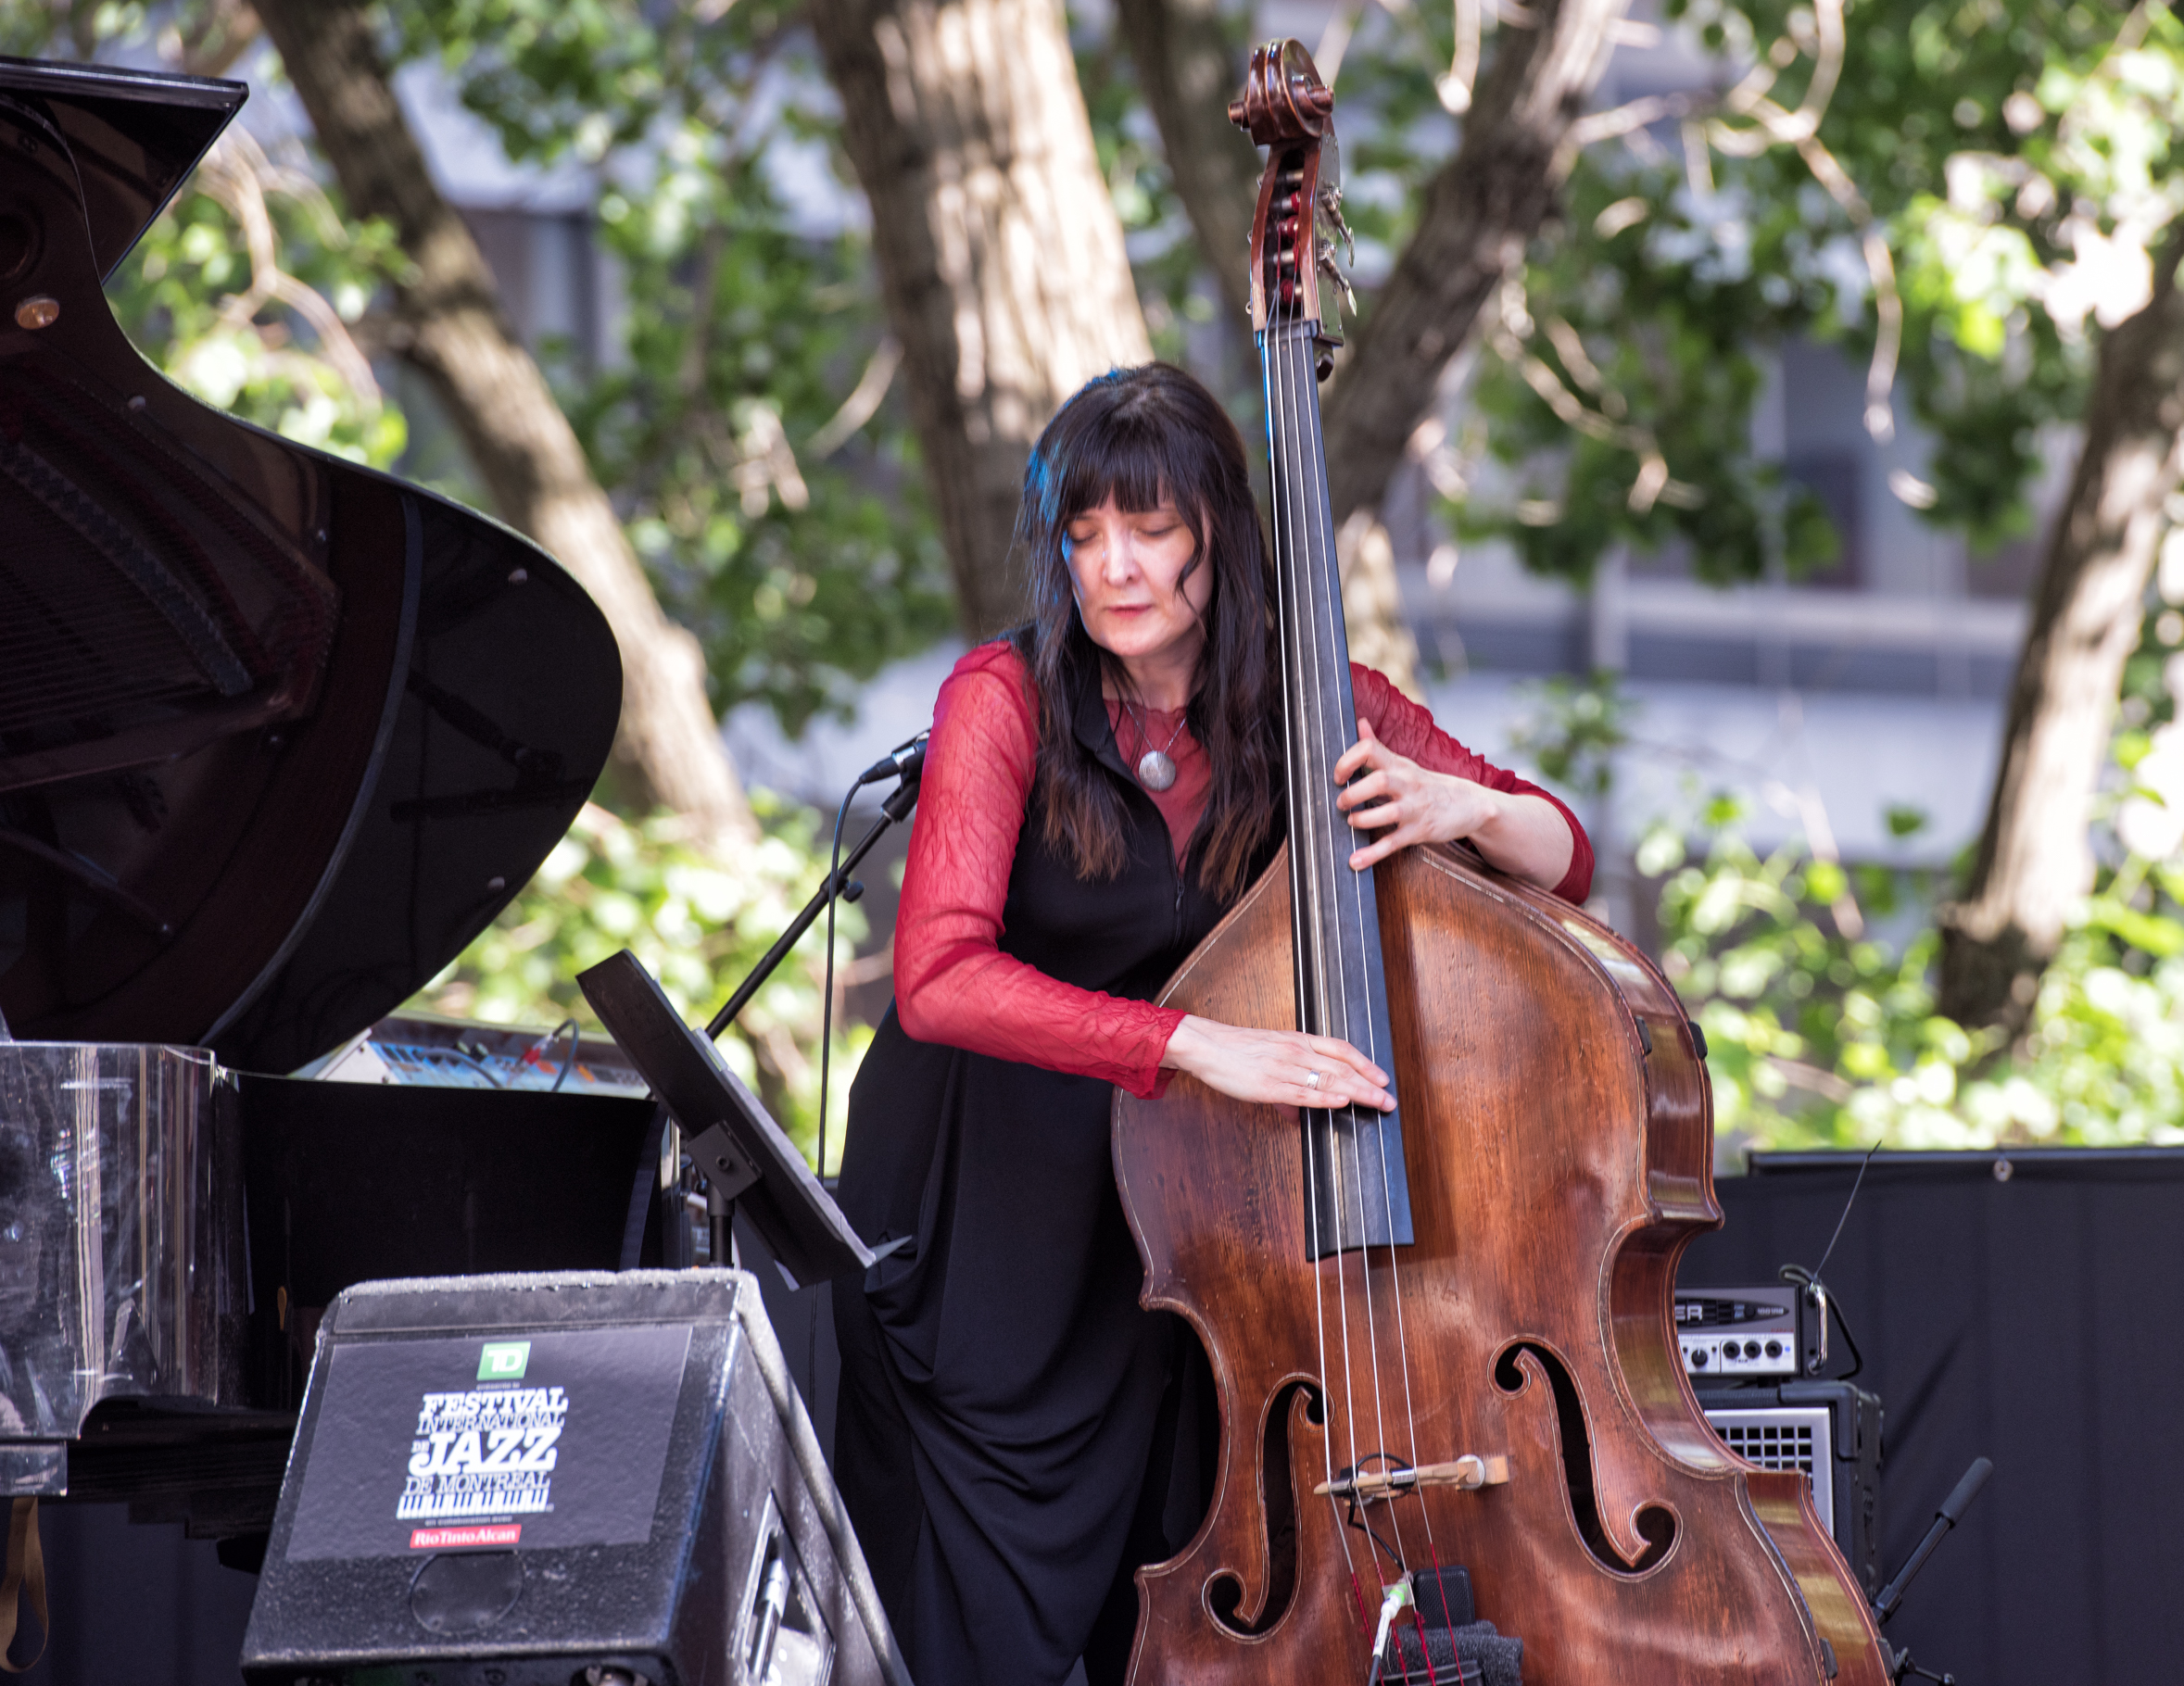 Giulia Valle at the Montreal International Jazz Festival 2015